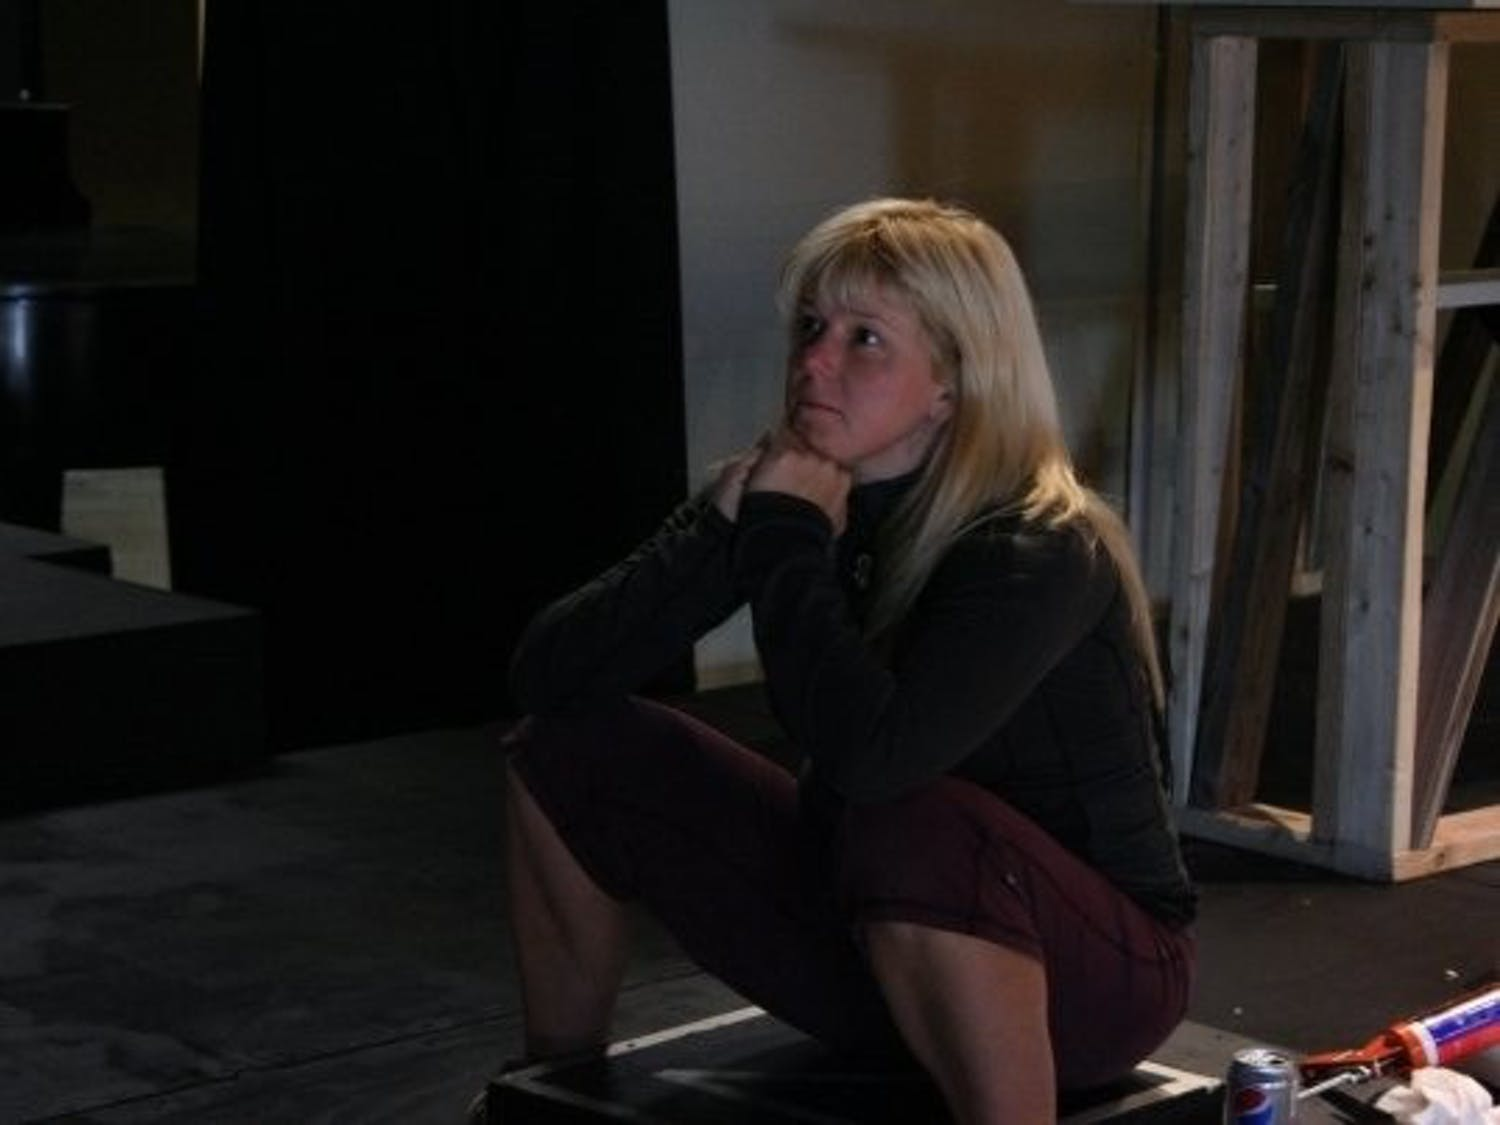 """Kathleen Golde is the intimacy director for UB's production of """"The Threepenny Opera,"""" and ensures issues and boundaries are addressed for her actors."""